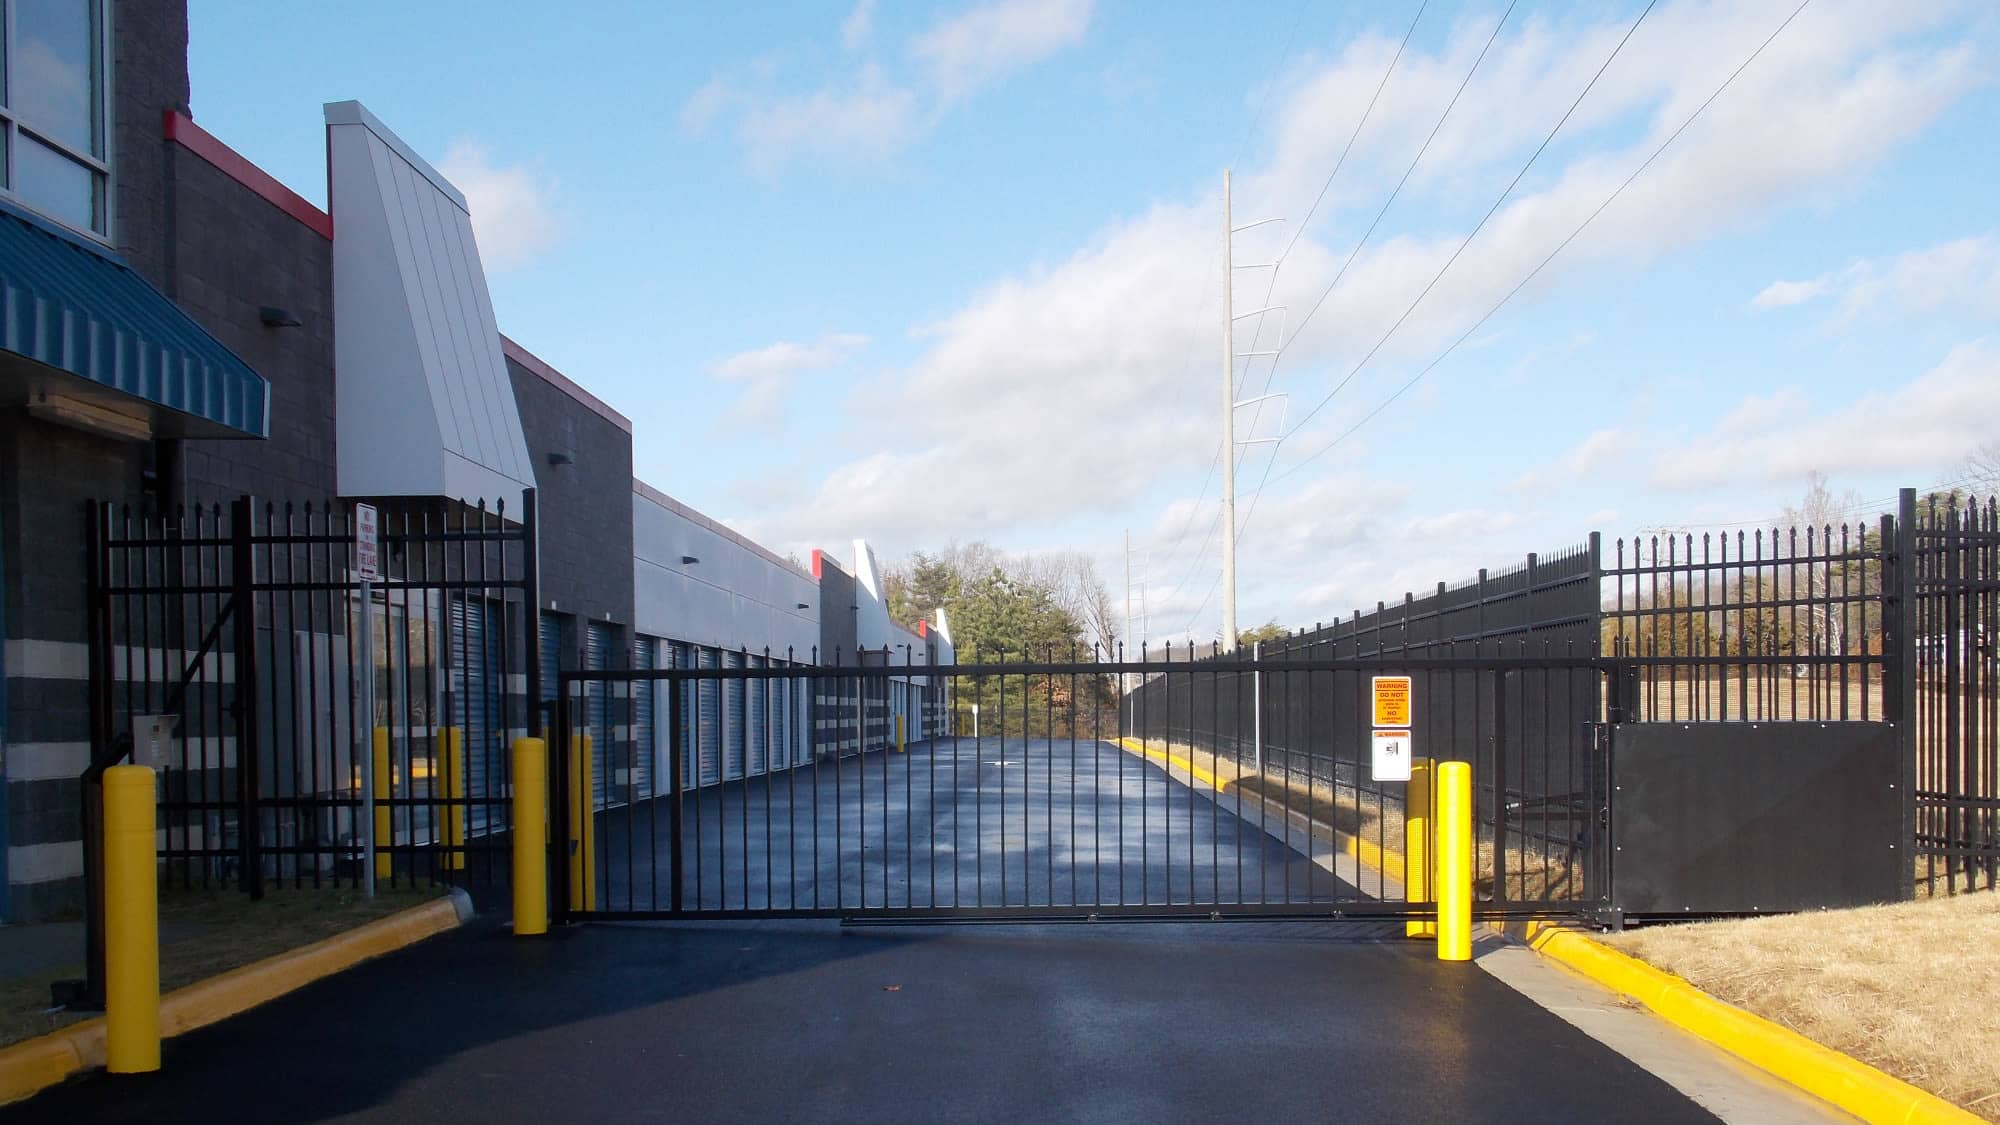 Entrance gate to Self Storage Plus in Fredericksburg, Virginia